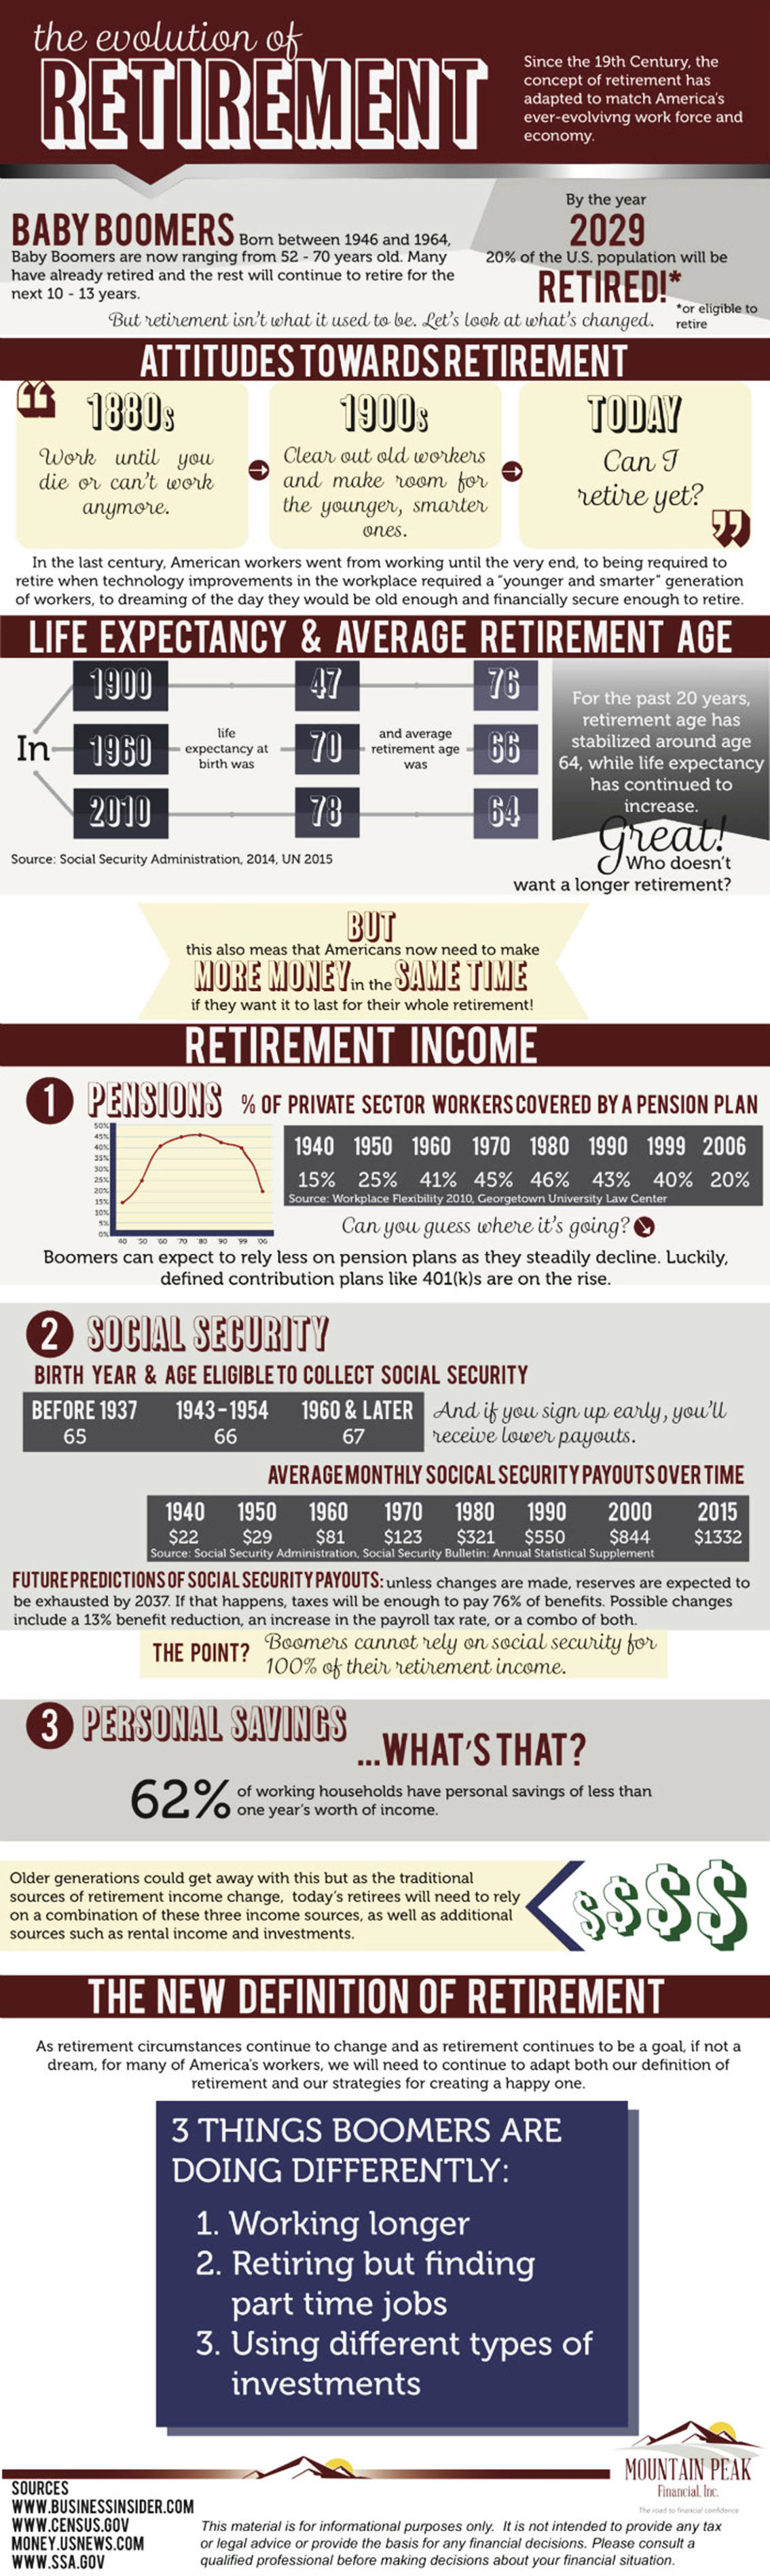 Evolution of Retirement Infographic